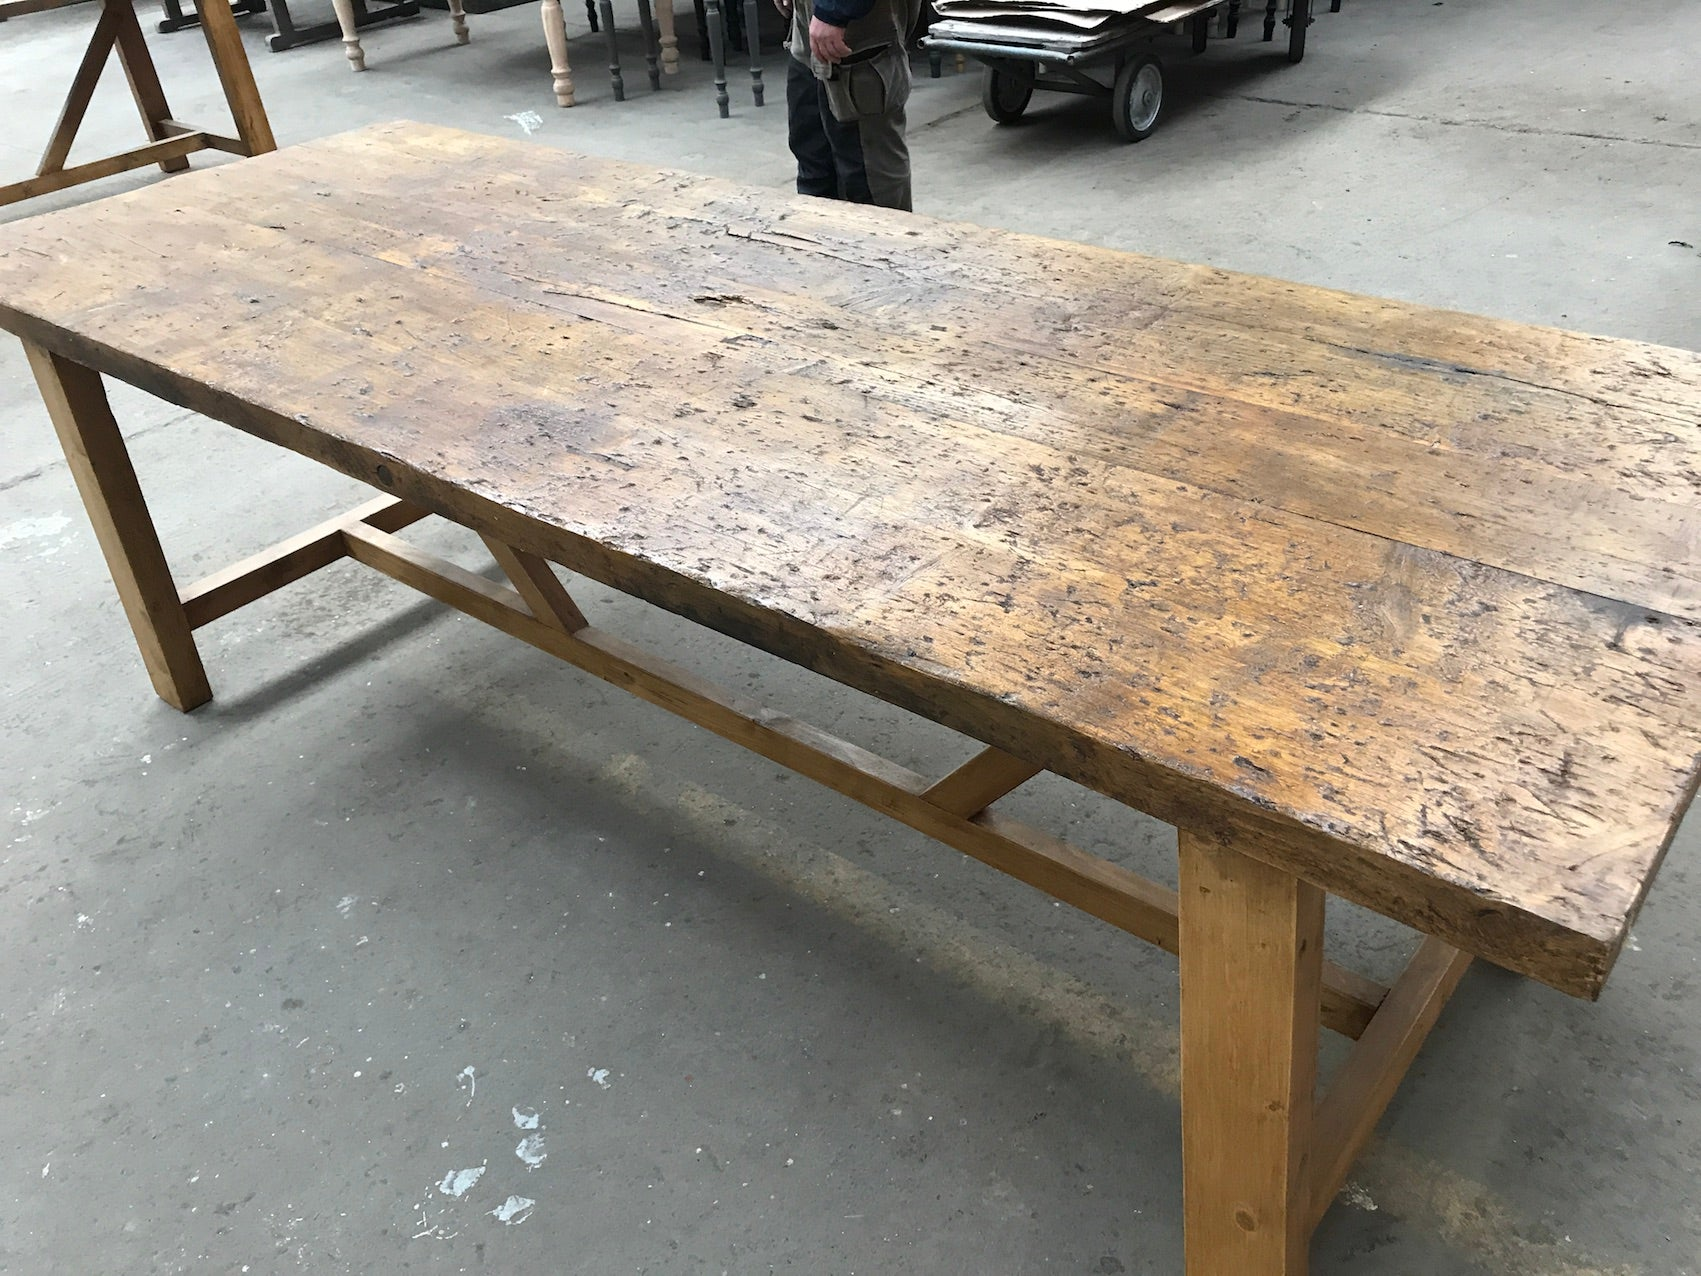 Vintage industrial European kitchen farmhouse dining table  2.4 mt #2399 Byron Warehouse